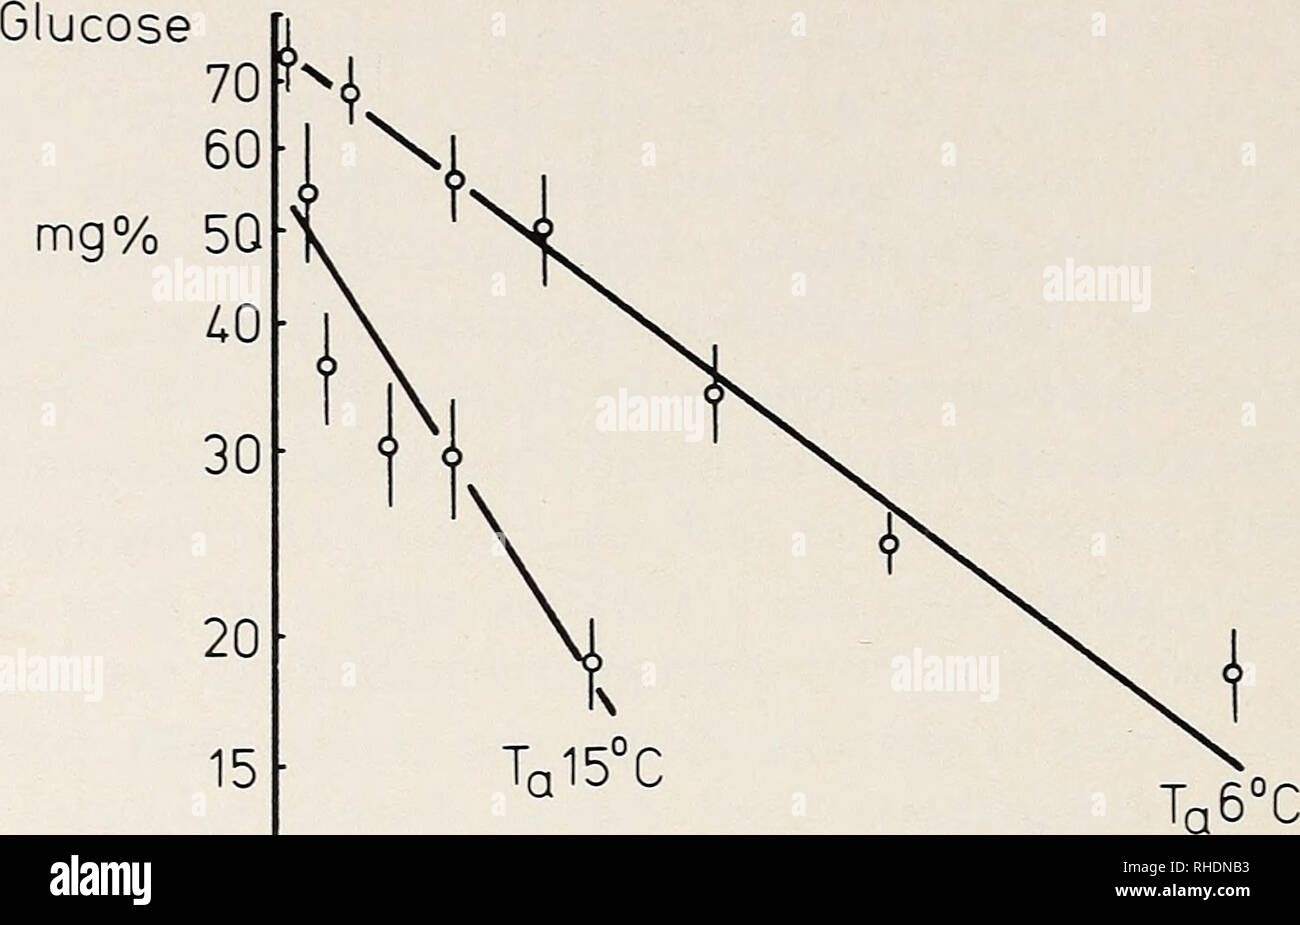 . Bonner zoologische Monographien. Zoology. 34 Plasma. i- hours 2 U 6 8 10 12 Fig. 22: Drop of plasma glucose level in the hibernating garden dormouse at different ambient (and body-) temperatures. Adapted from Ambid (1971). However, homeostasis of the blood sugar level may be difficult to main- tain during hibernation (Raths 1961). After all, in golden hamsters, survival time during helium-induced hypothermia is increased if one prevents the decrease of liver glycogen and blood glucose (Prewitt et al. 1972). Glucose can be absorbed from the intestine during hibernation (Musacchia and Westhoff - Stock Image